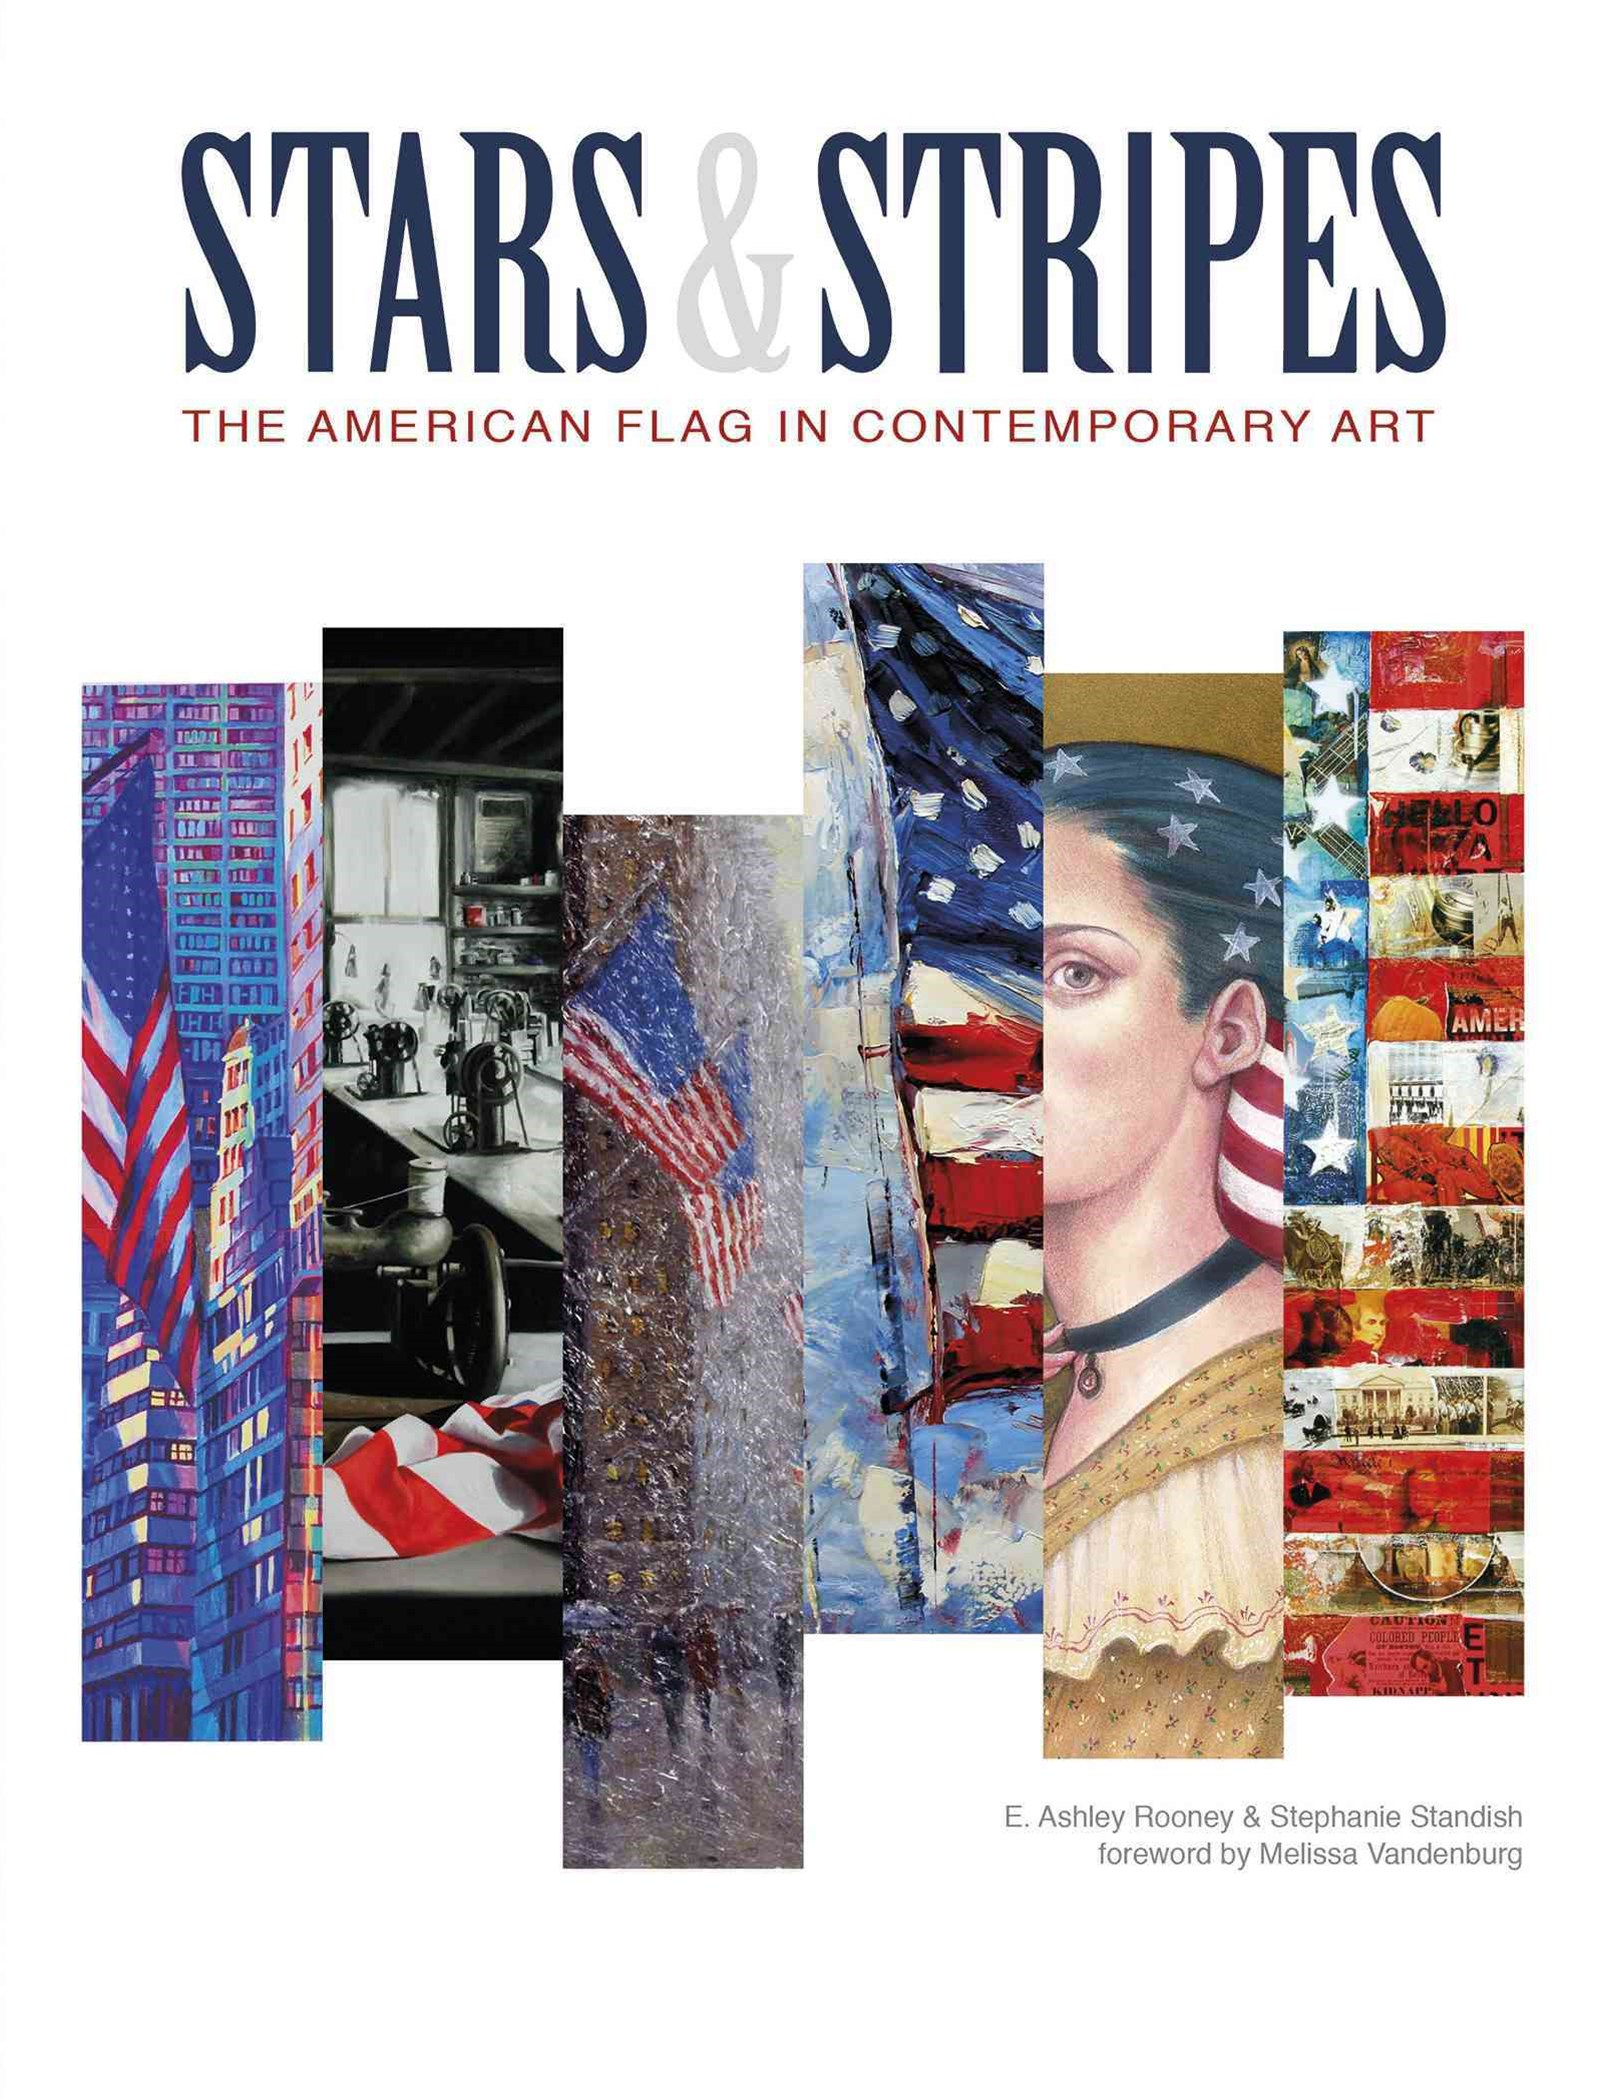 Stars and Stripes: The American Flag in Contemporary Art